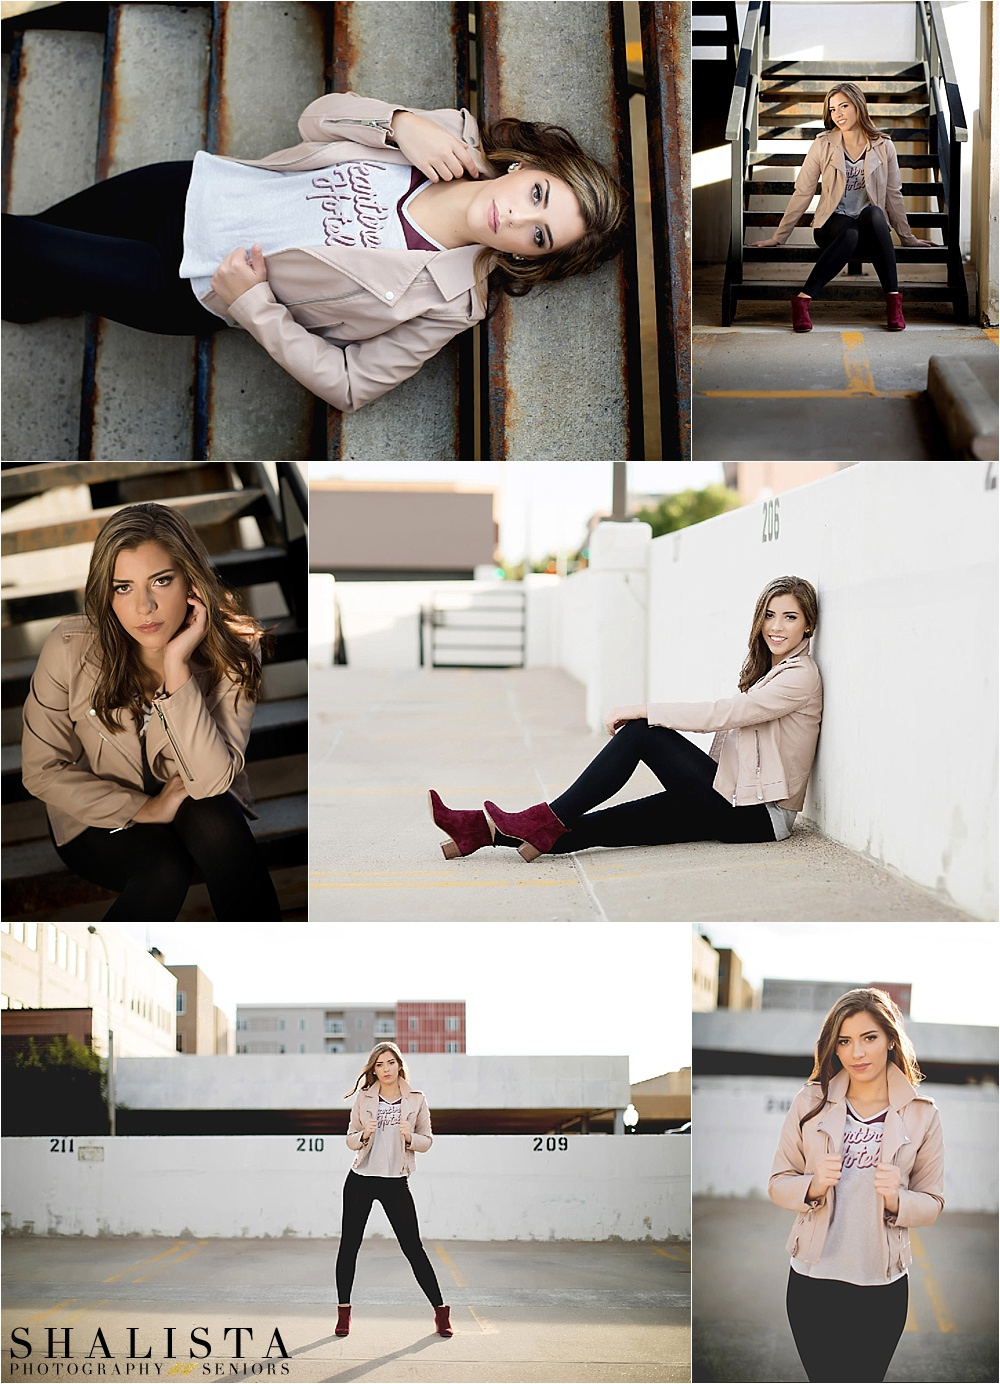 Urban Senior Portraits in Sioux Falls